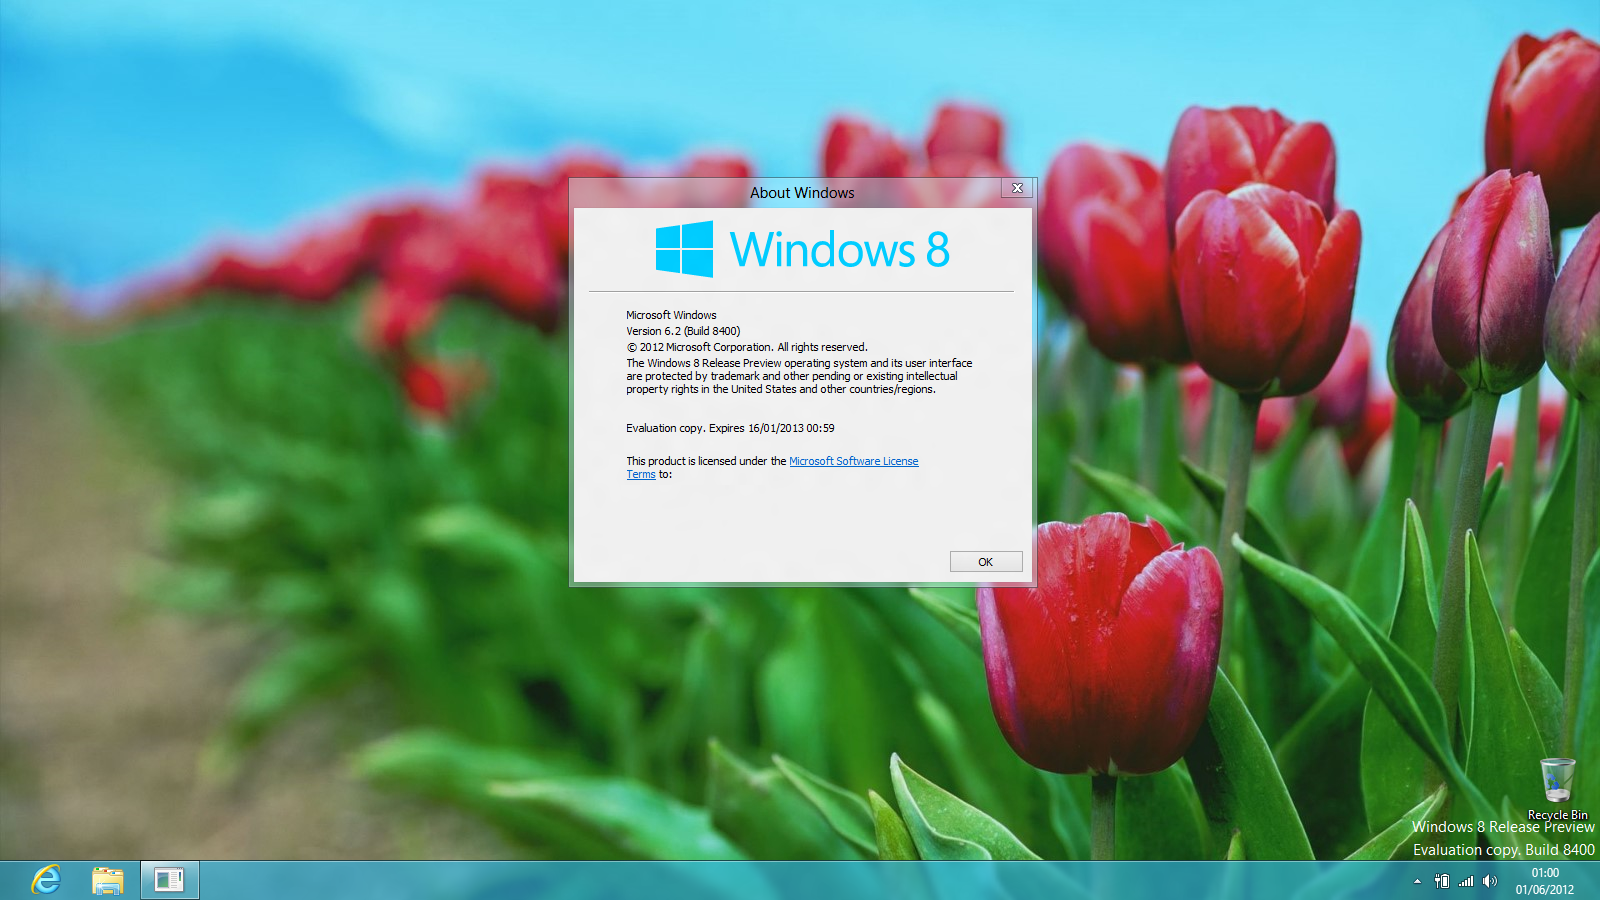 Windows 8 release preview [flak12] crack by circtisashou issuu.